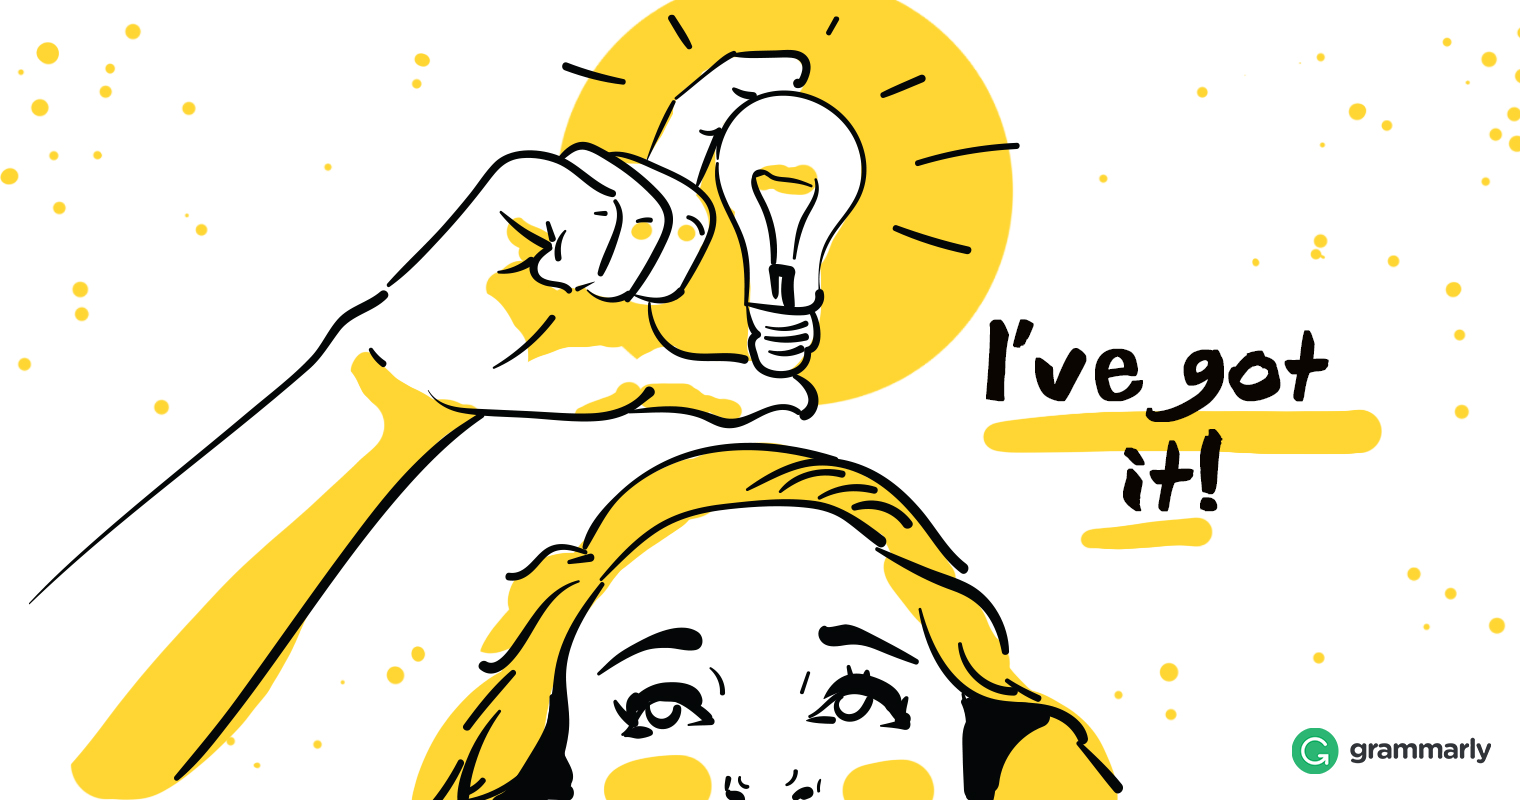 21 Ways to Inspire Creativity When You're Out of Ideas image